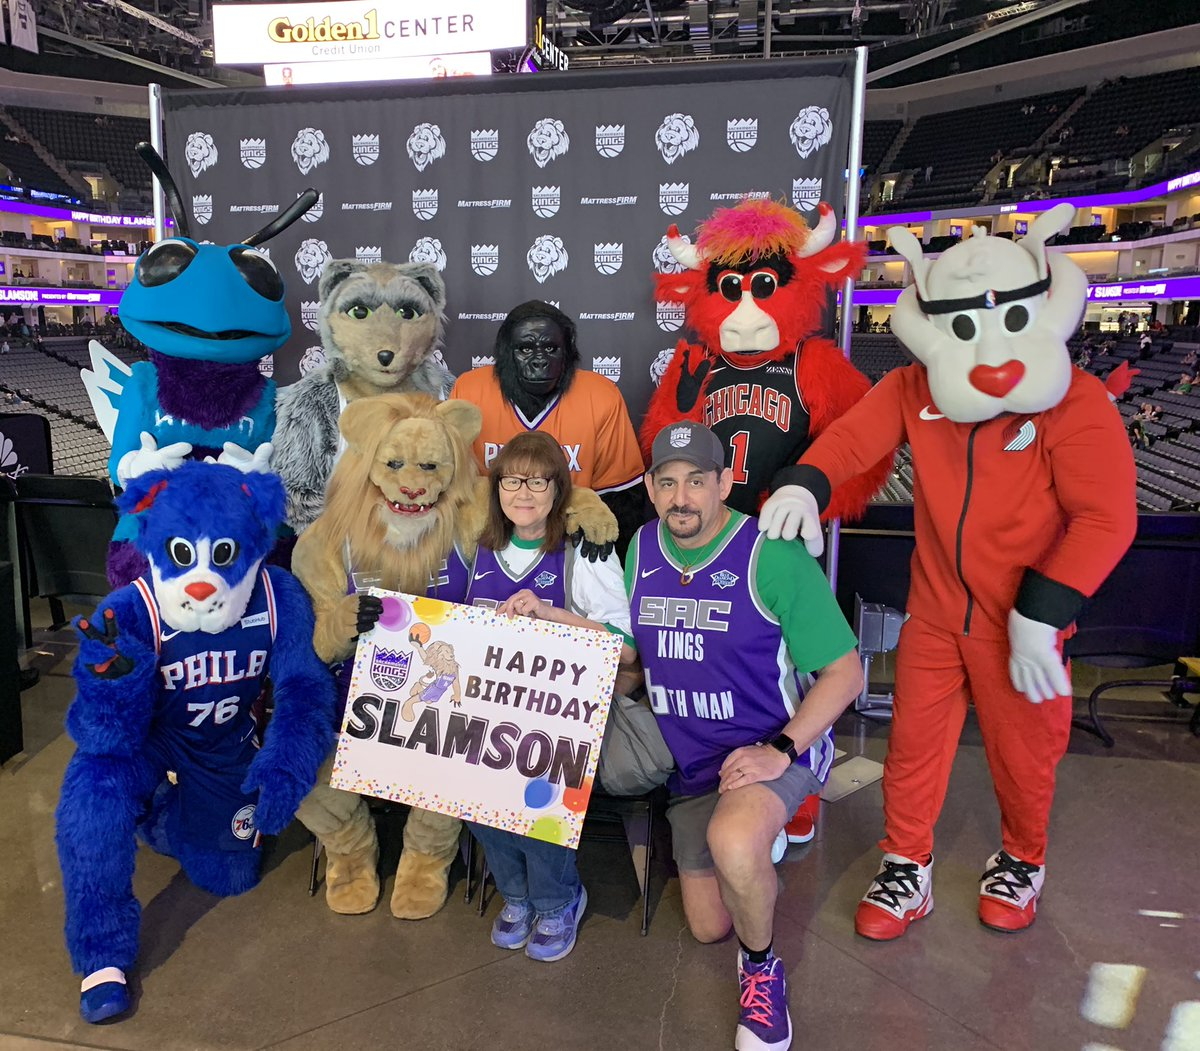 Sign #85- Birthday sign for @SlamsonTheLion, the best mascot in the NBA! We didn't get to celebrate in person this year due to the shutdown, so happy belated Birthday Slamson! We have missed seeing you at the arena! 🦁🎉💜 #InThisTogether #SacProudSigns https://t.co/Qc9N1BxEMc